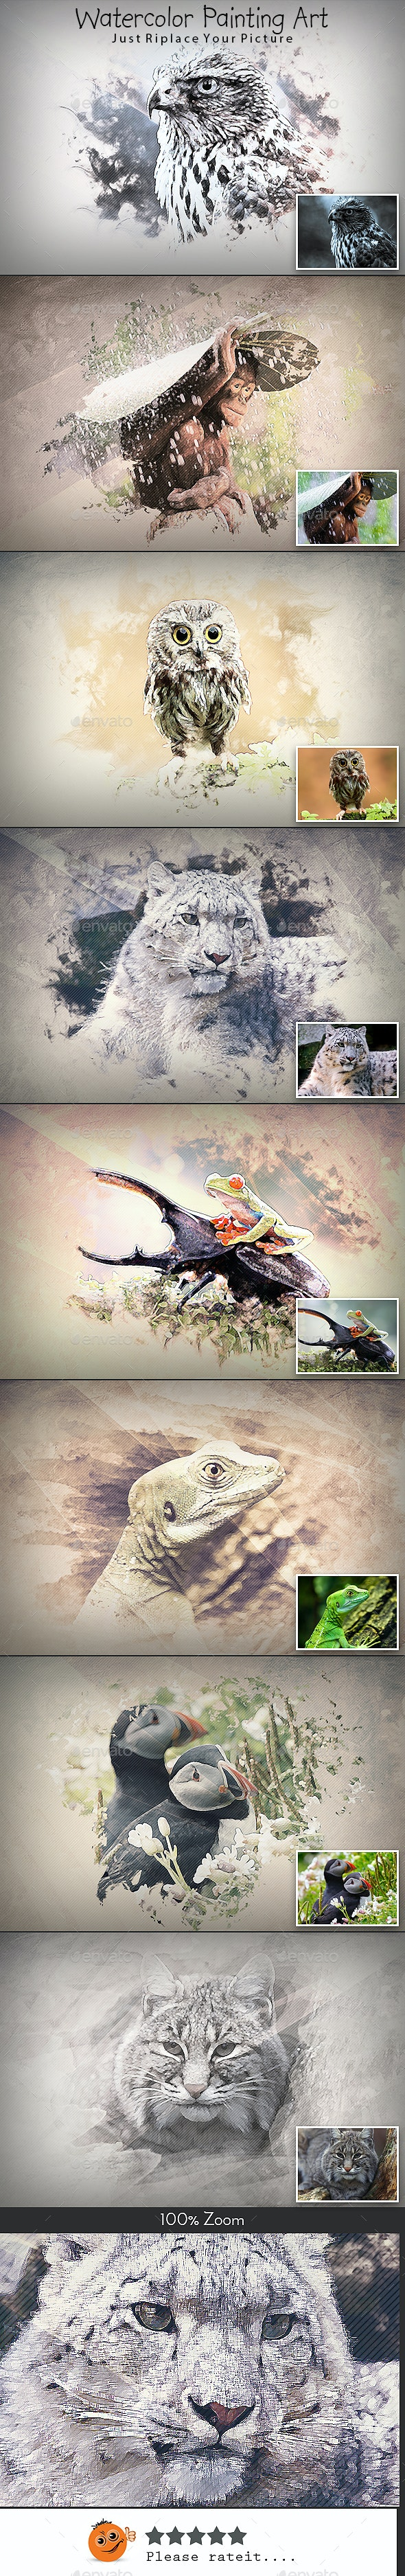 Watercolor Painting Art - Photo Templates Graphics